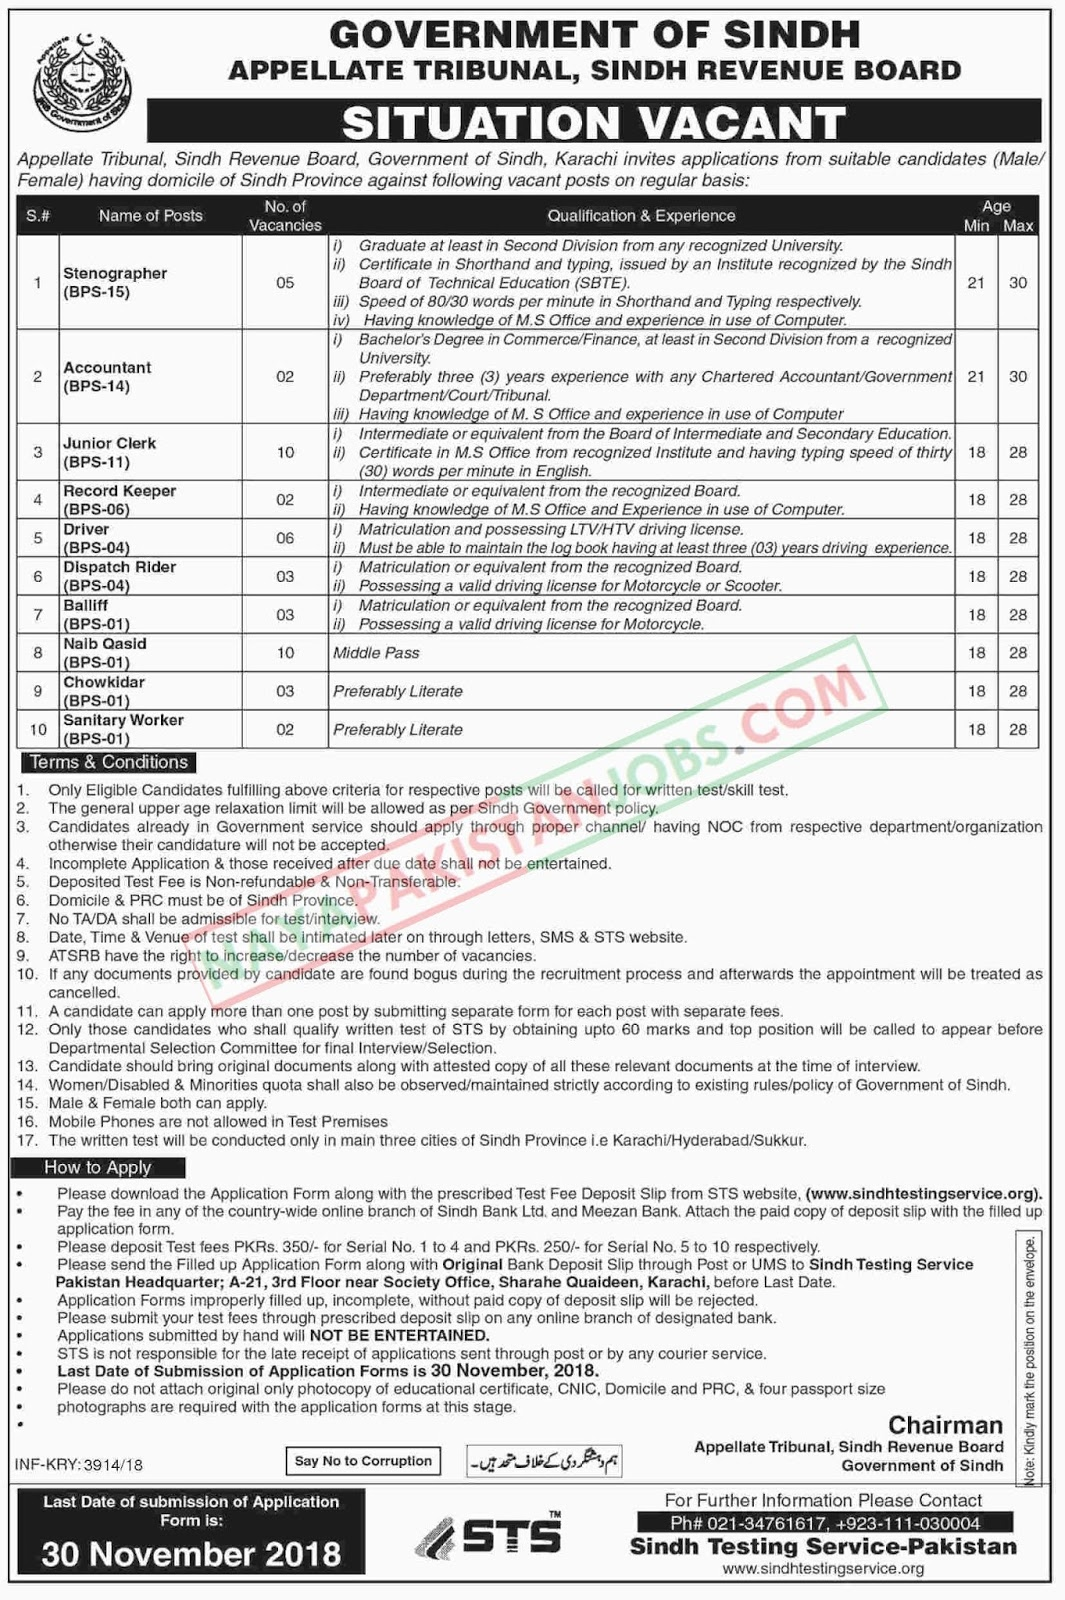 Latest Vacancies Announced in Sindh Revenue Board Karachi 12 November 2018 - Naya Pakistan